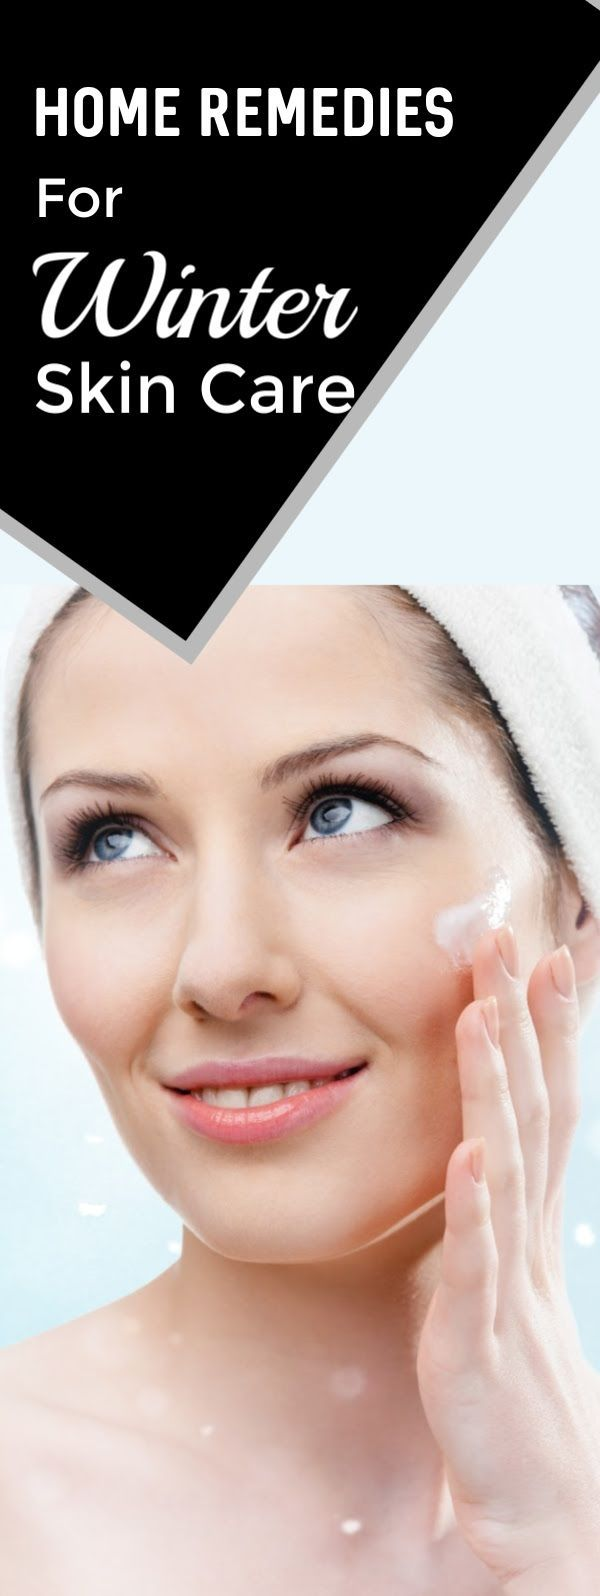 How To Take Care Of Dry Skin In 2020 Skin Care Toner Products Winter Skin Care Skin Care Clinic